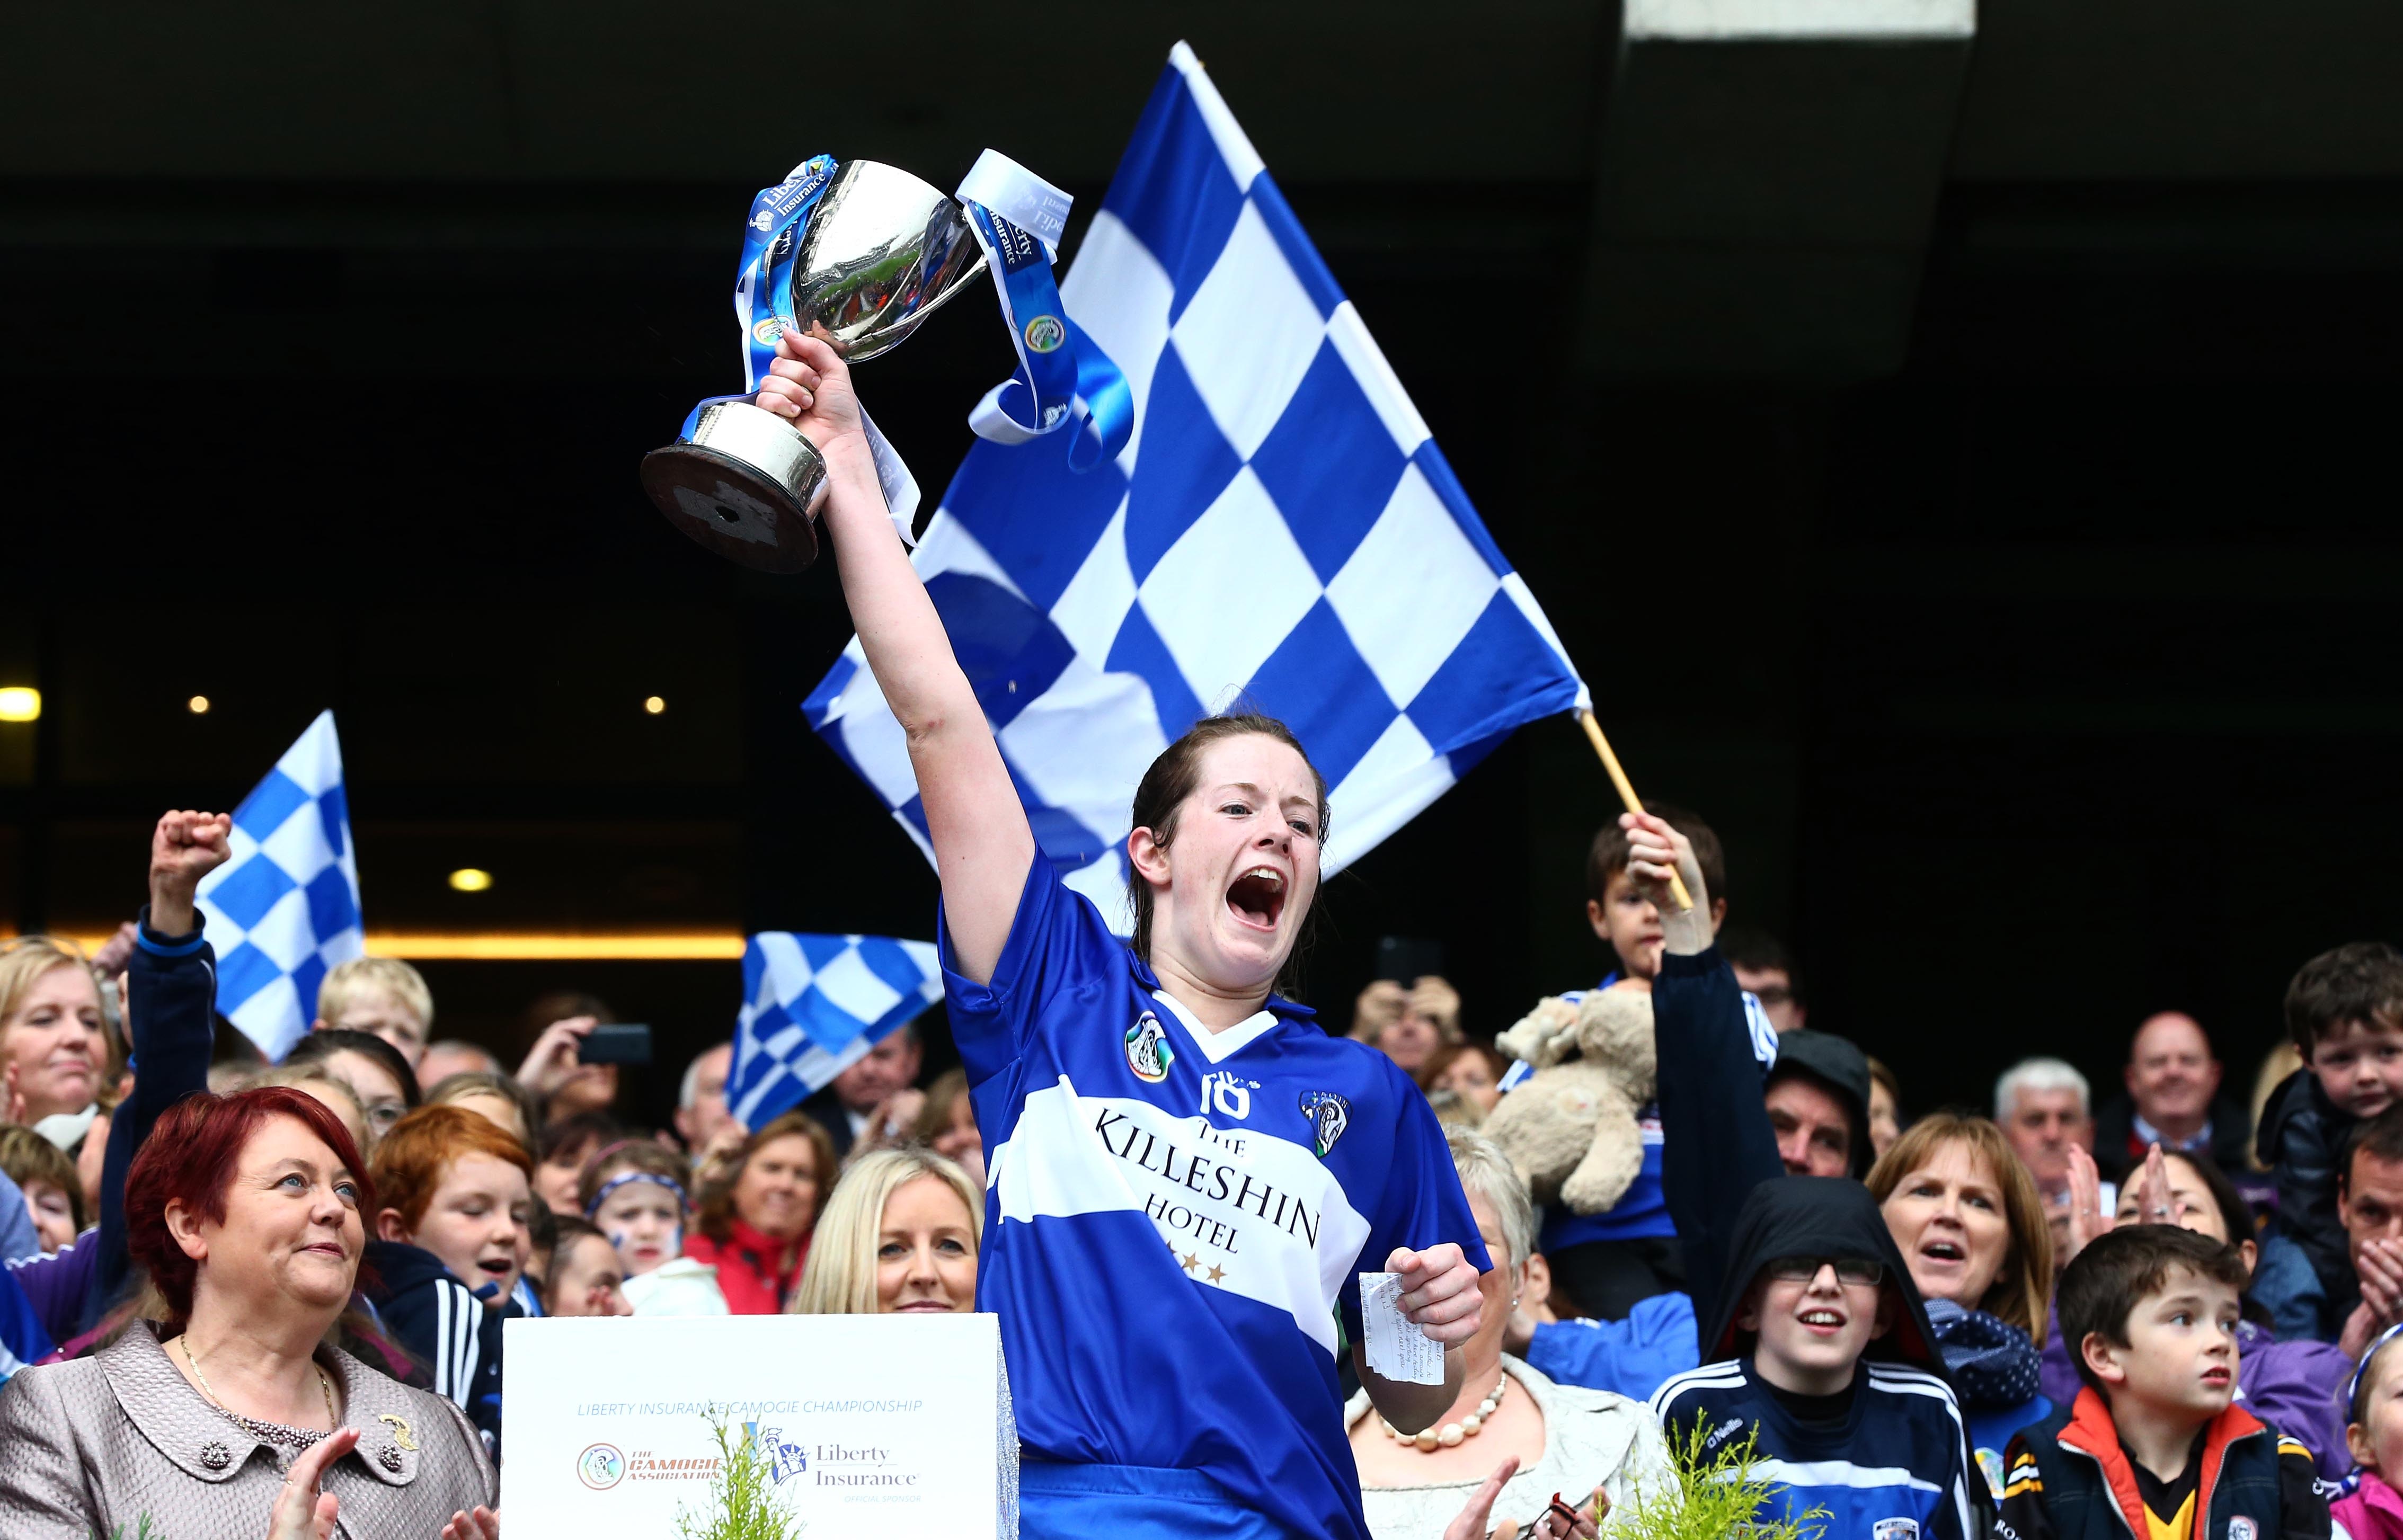 REPRO FREE***PRESS RELEASE NO REPRODUCTION FEE*** Liberty Insurance Premier Junior Camogie Championship Final, Croke Park, Dublin 13/9/2015 Roscommon vs Laois Laois captain Niamh Dollard lifts the cup Mandatory Credit ©INPHO/Cathal Noonan